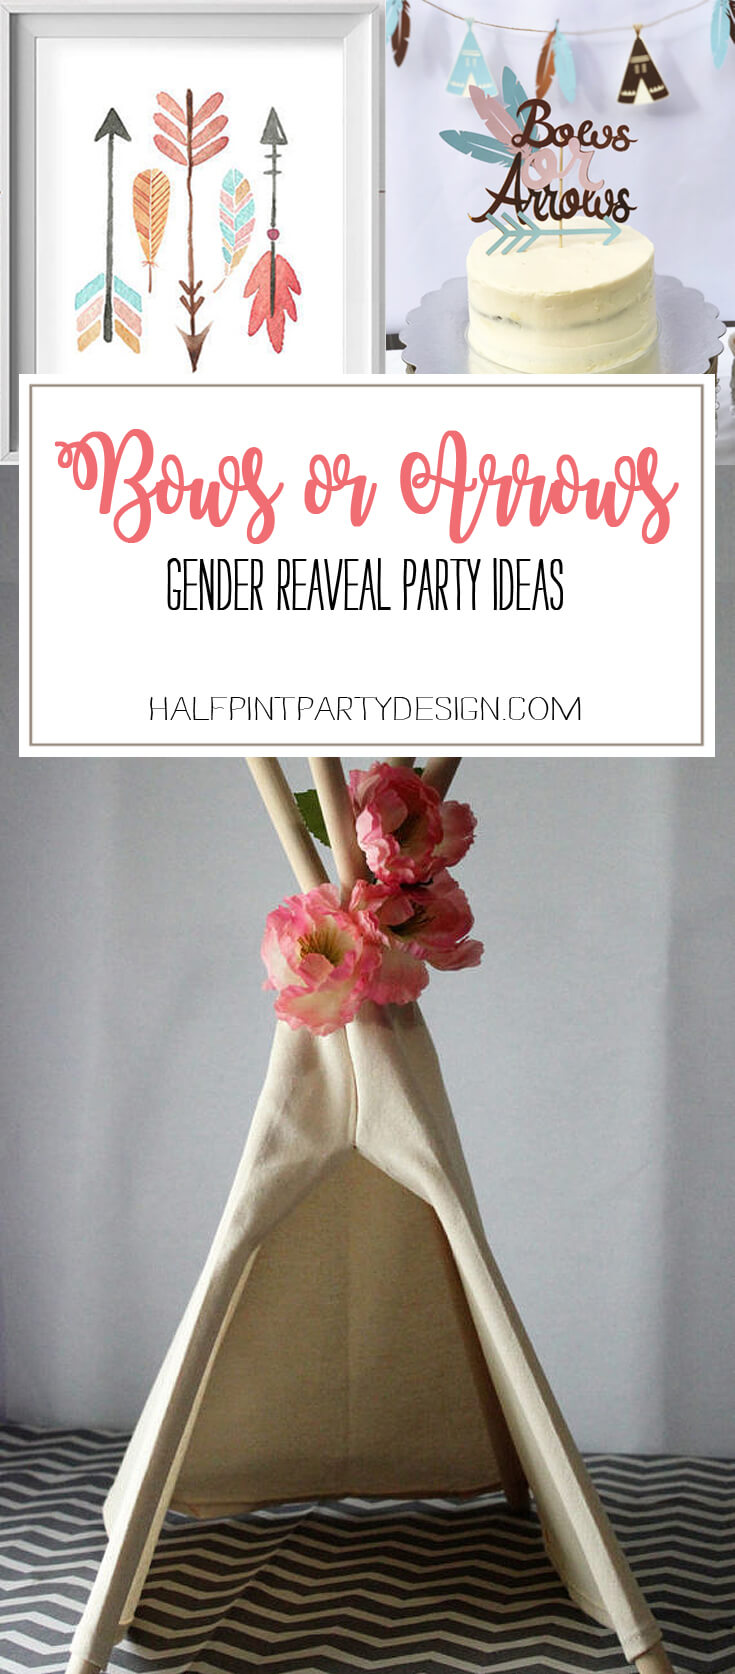 Bows or Arrows: Gender Reveal Party Ideas | Halfpint Design - Bows or Arrows is a darling gender reveal theme with tons of gorgeous party decor options. Checkout the list of party decor suggestions here.